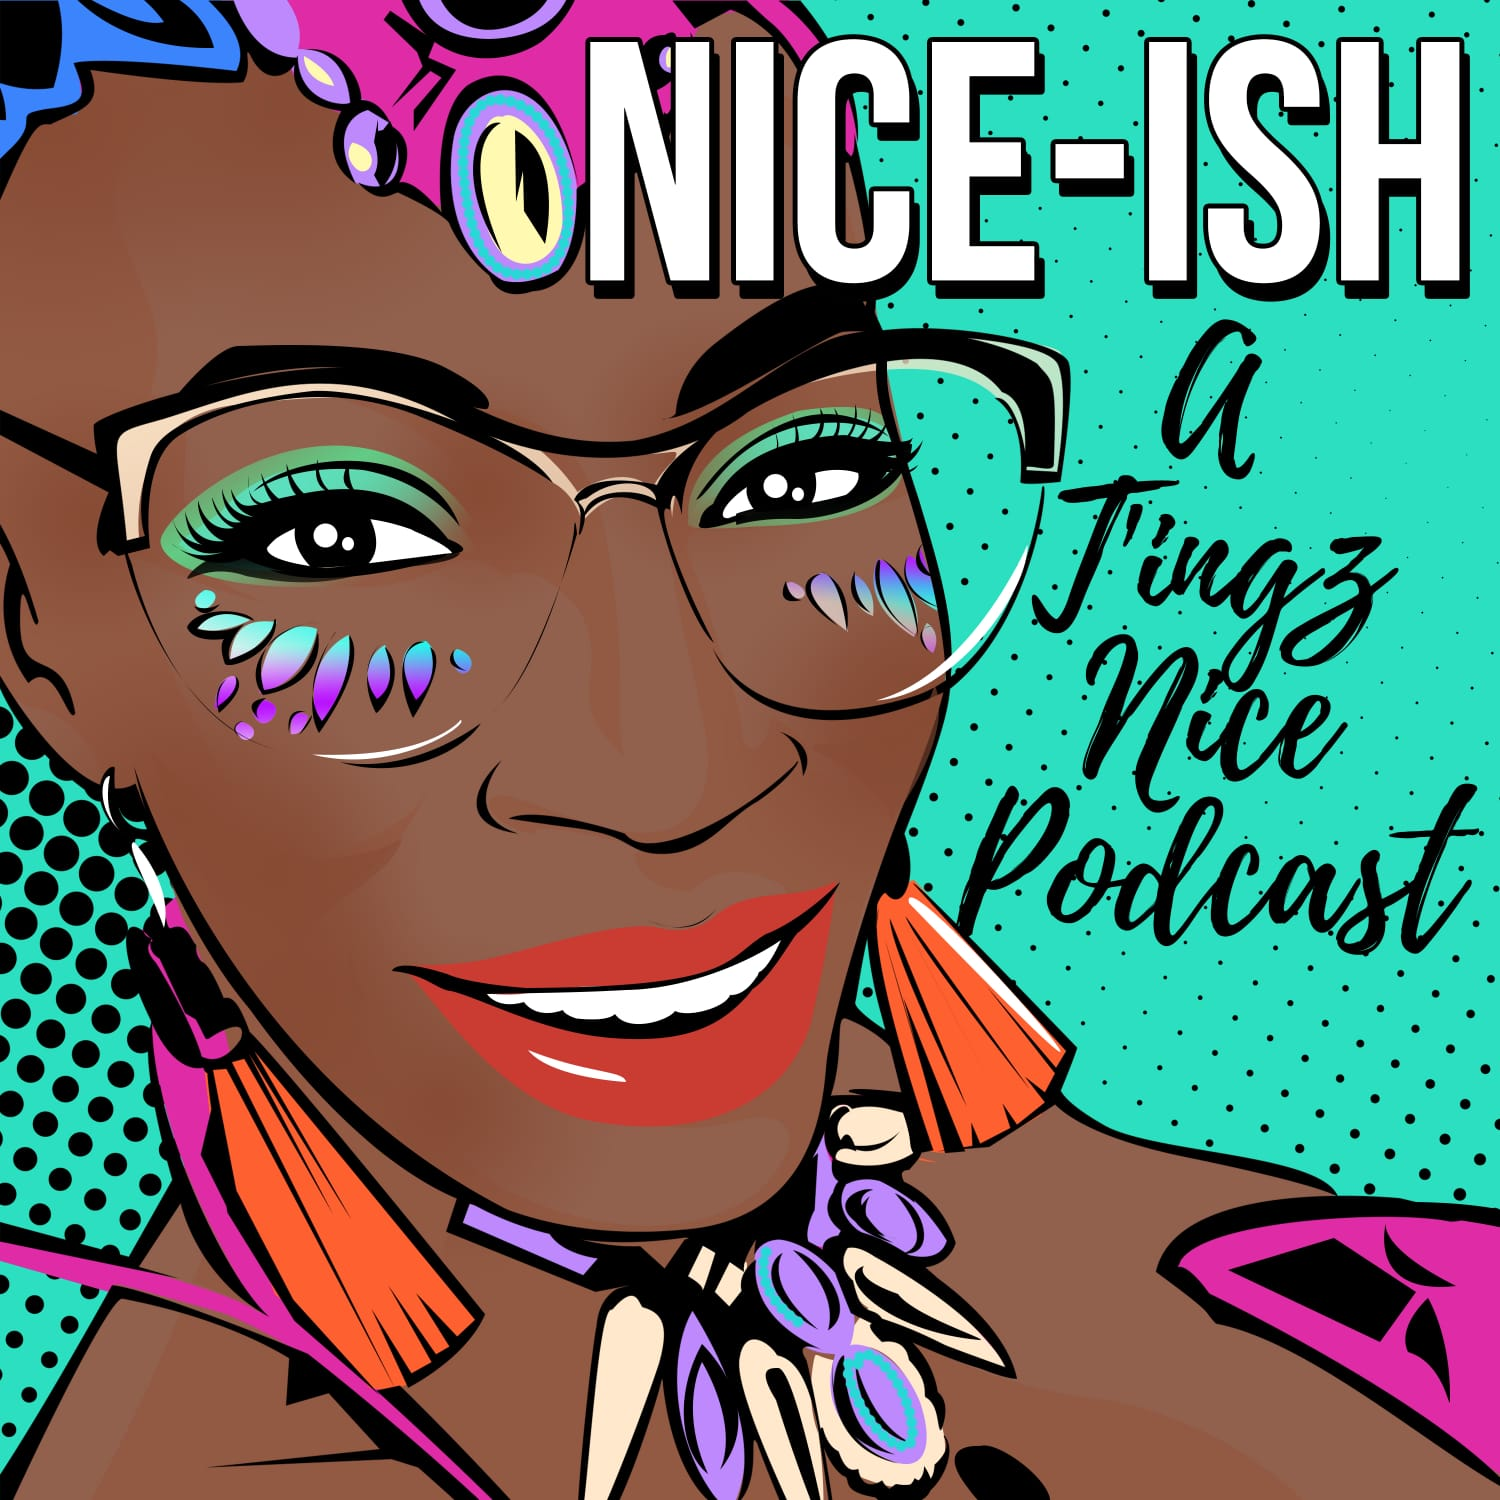 The T'ingz Nice Podcast